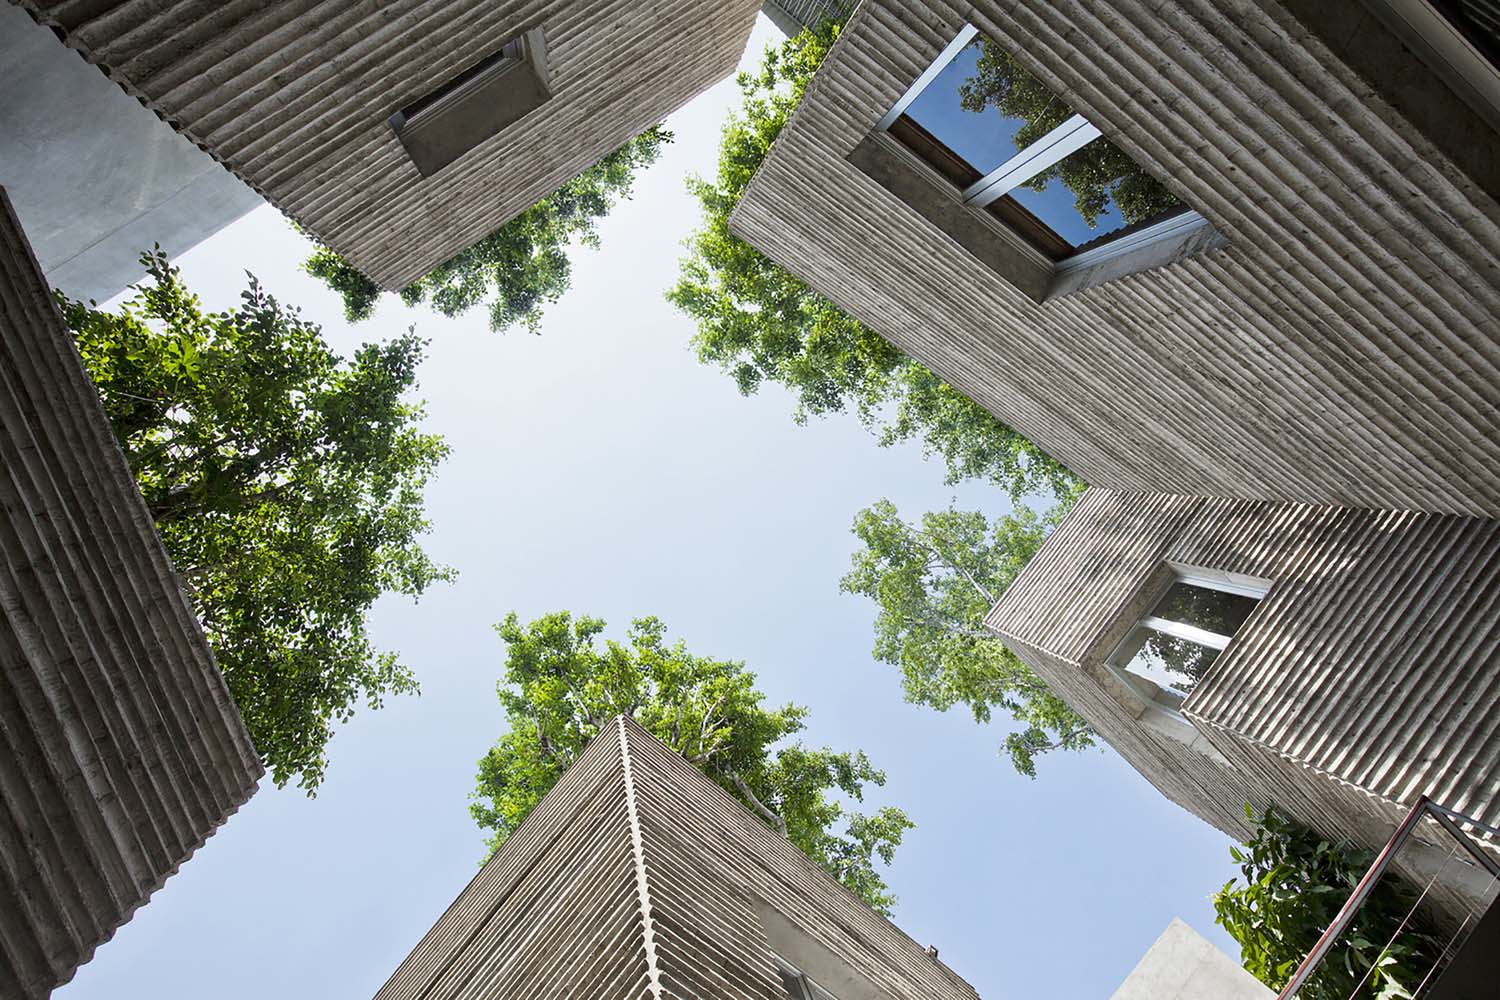 House for Trees design by Vo Trong Nghia Architects